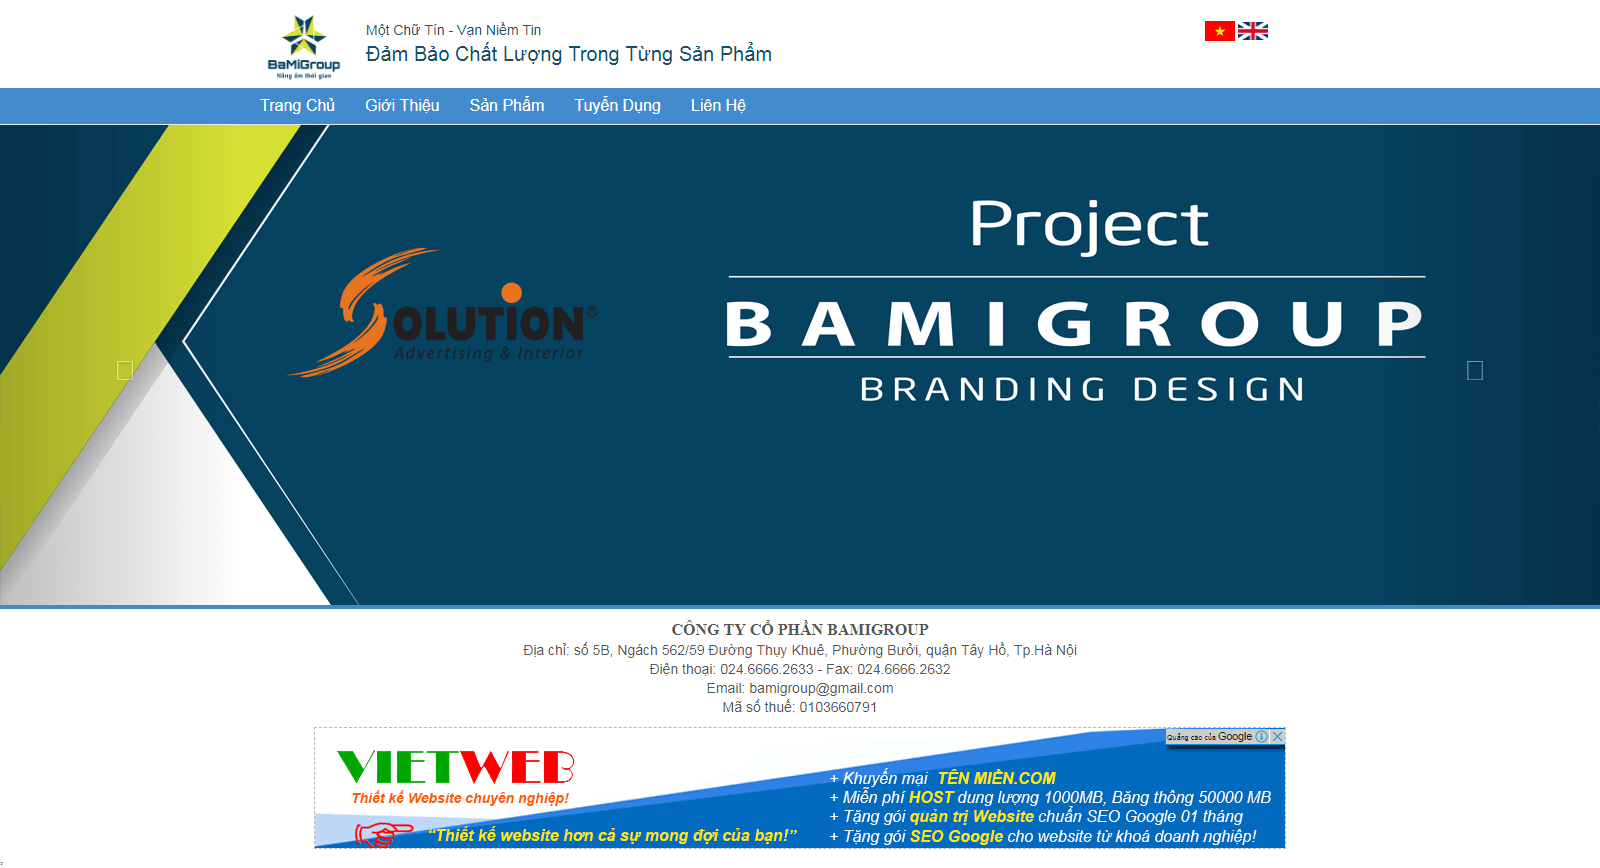 Thiết kế website bamigroup.vn